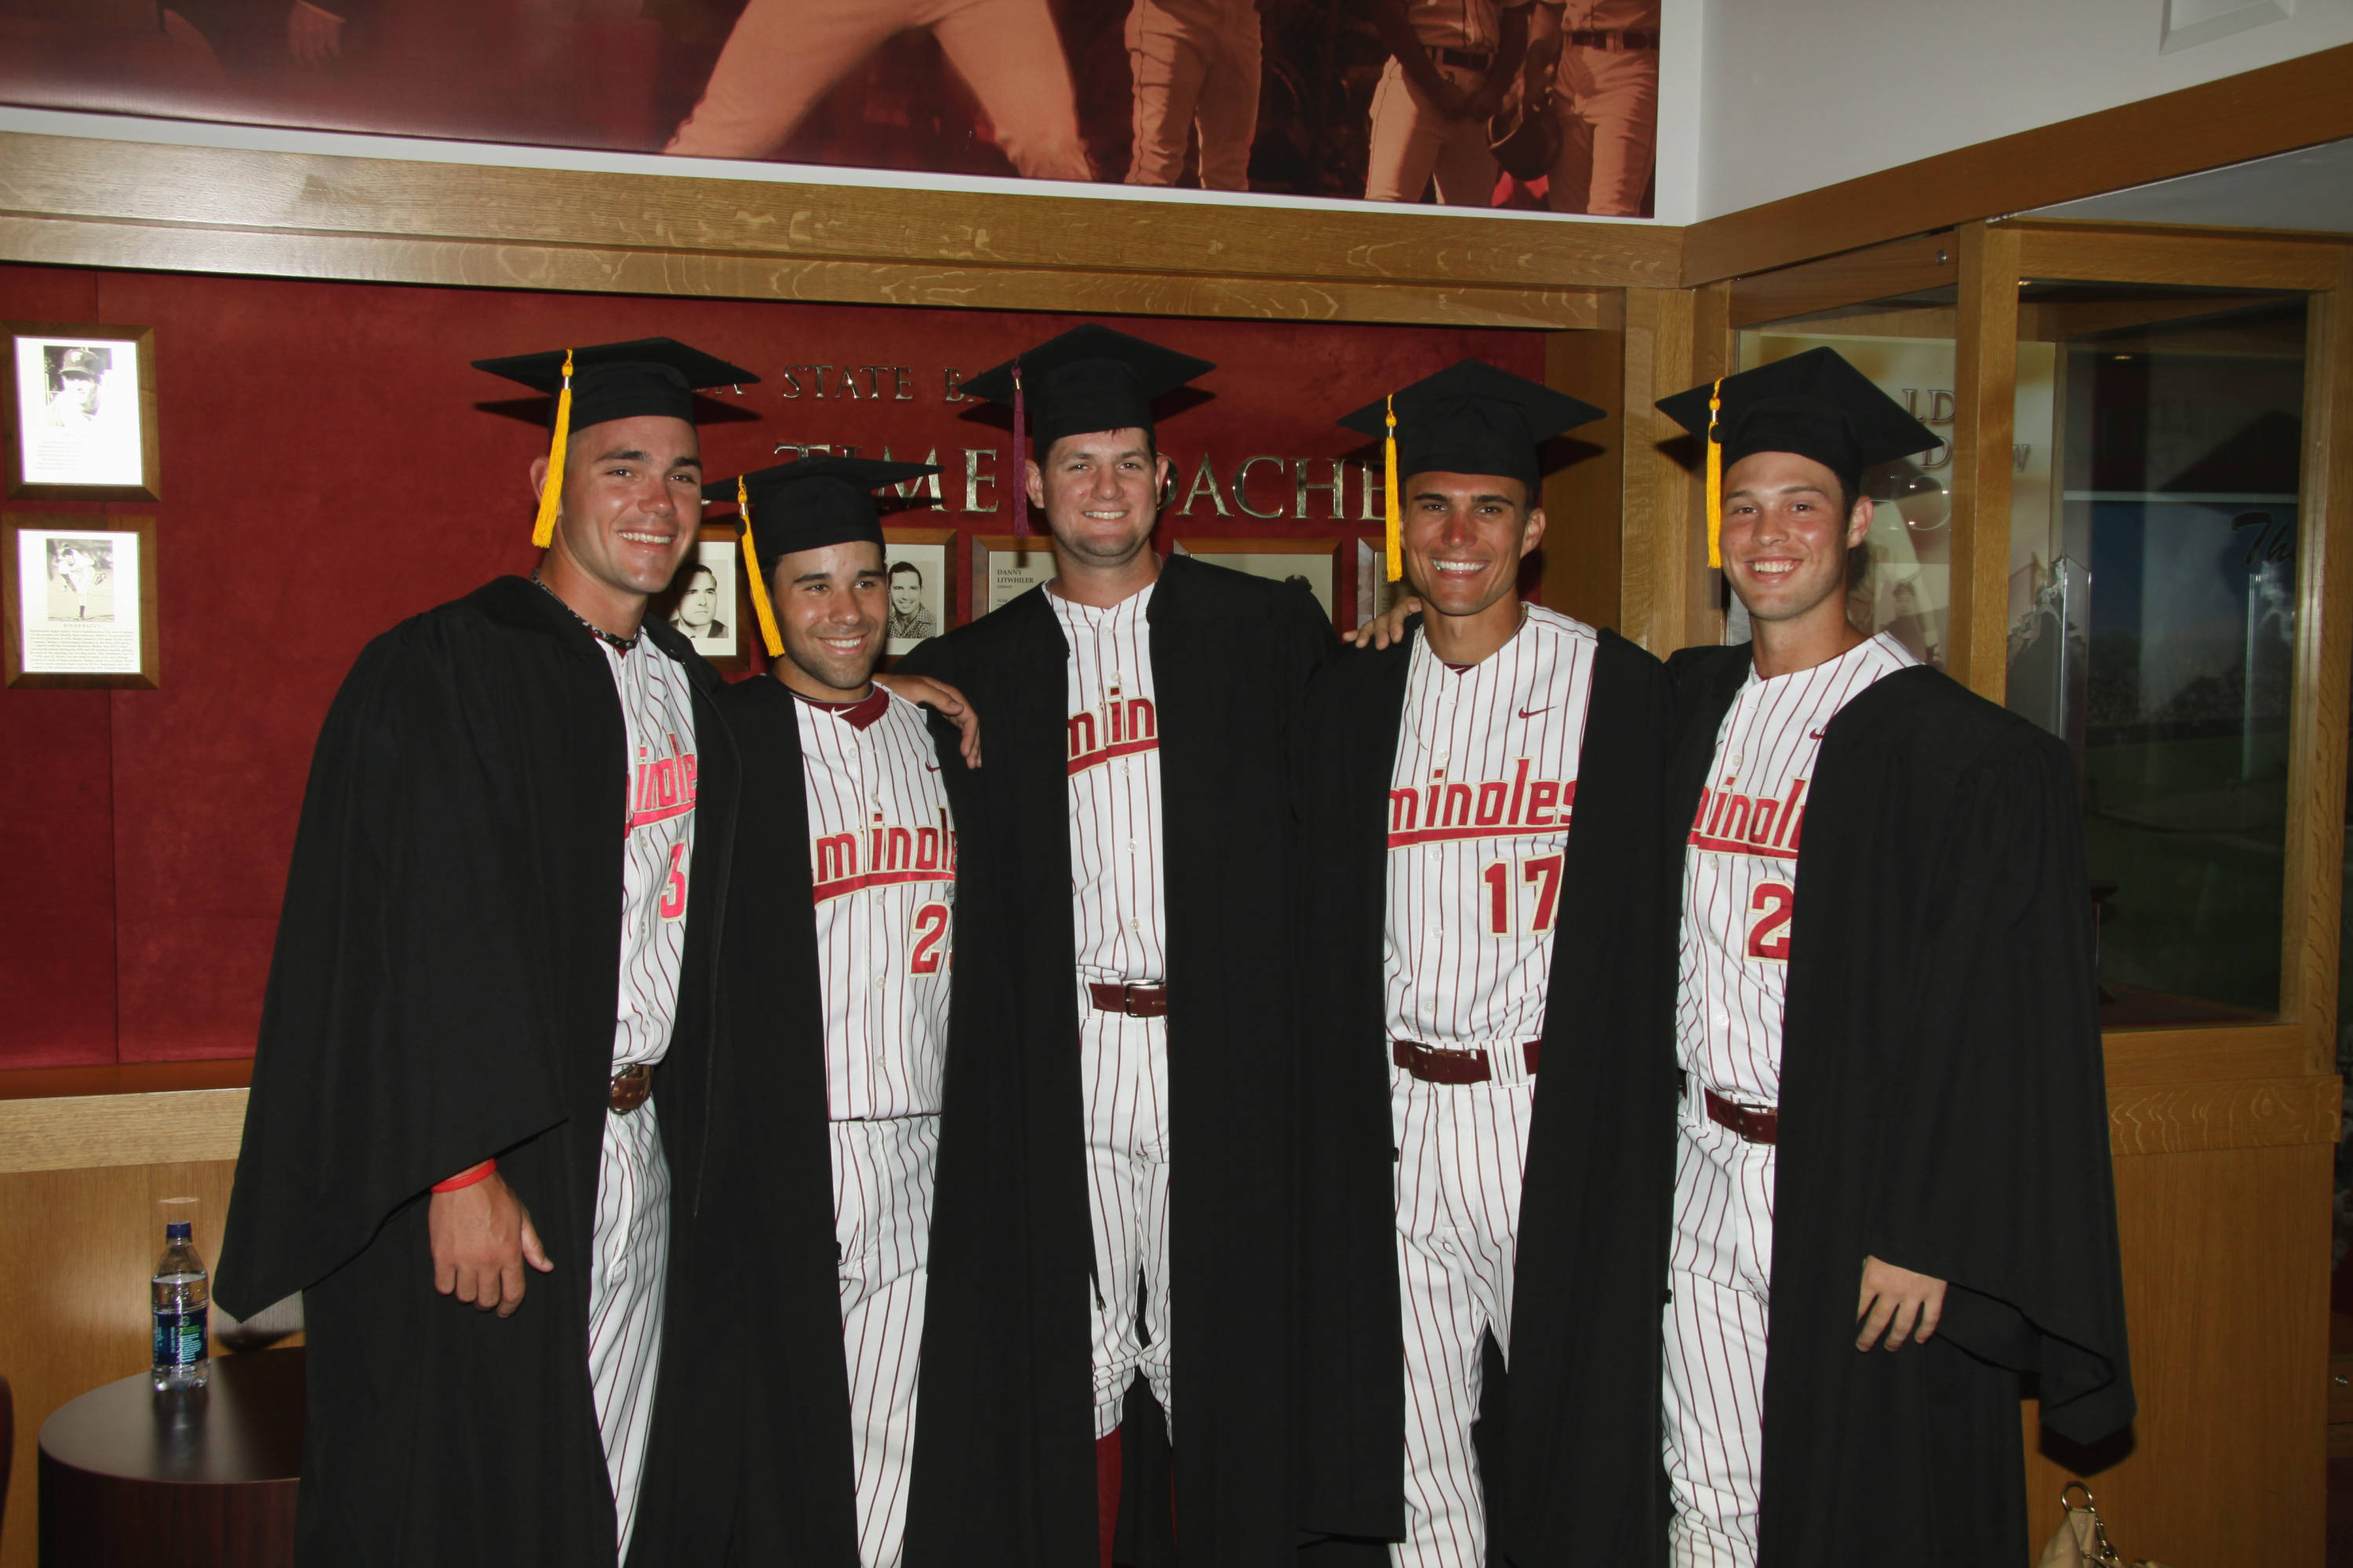 2011 Spring Graduation Ceremony held at Dick Howser Stadium to honor the graduating baseball seniors.